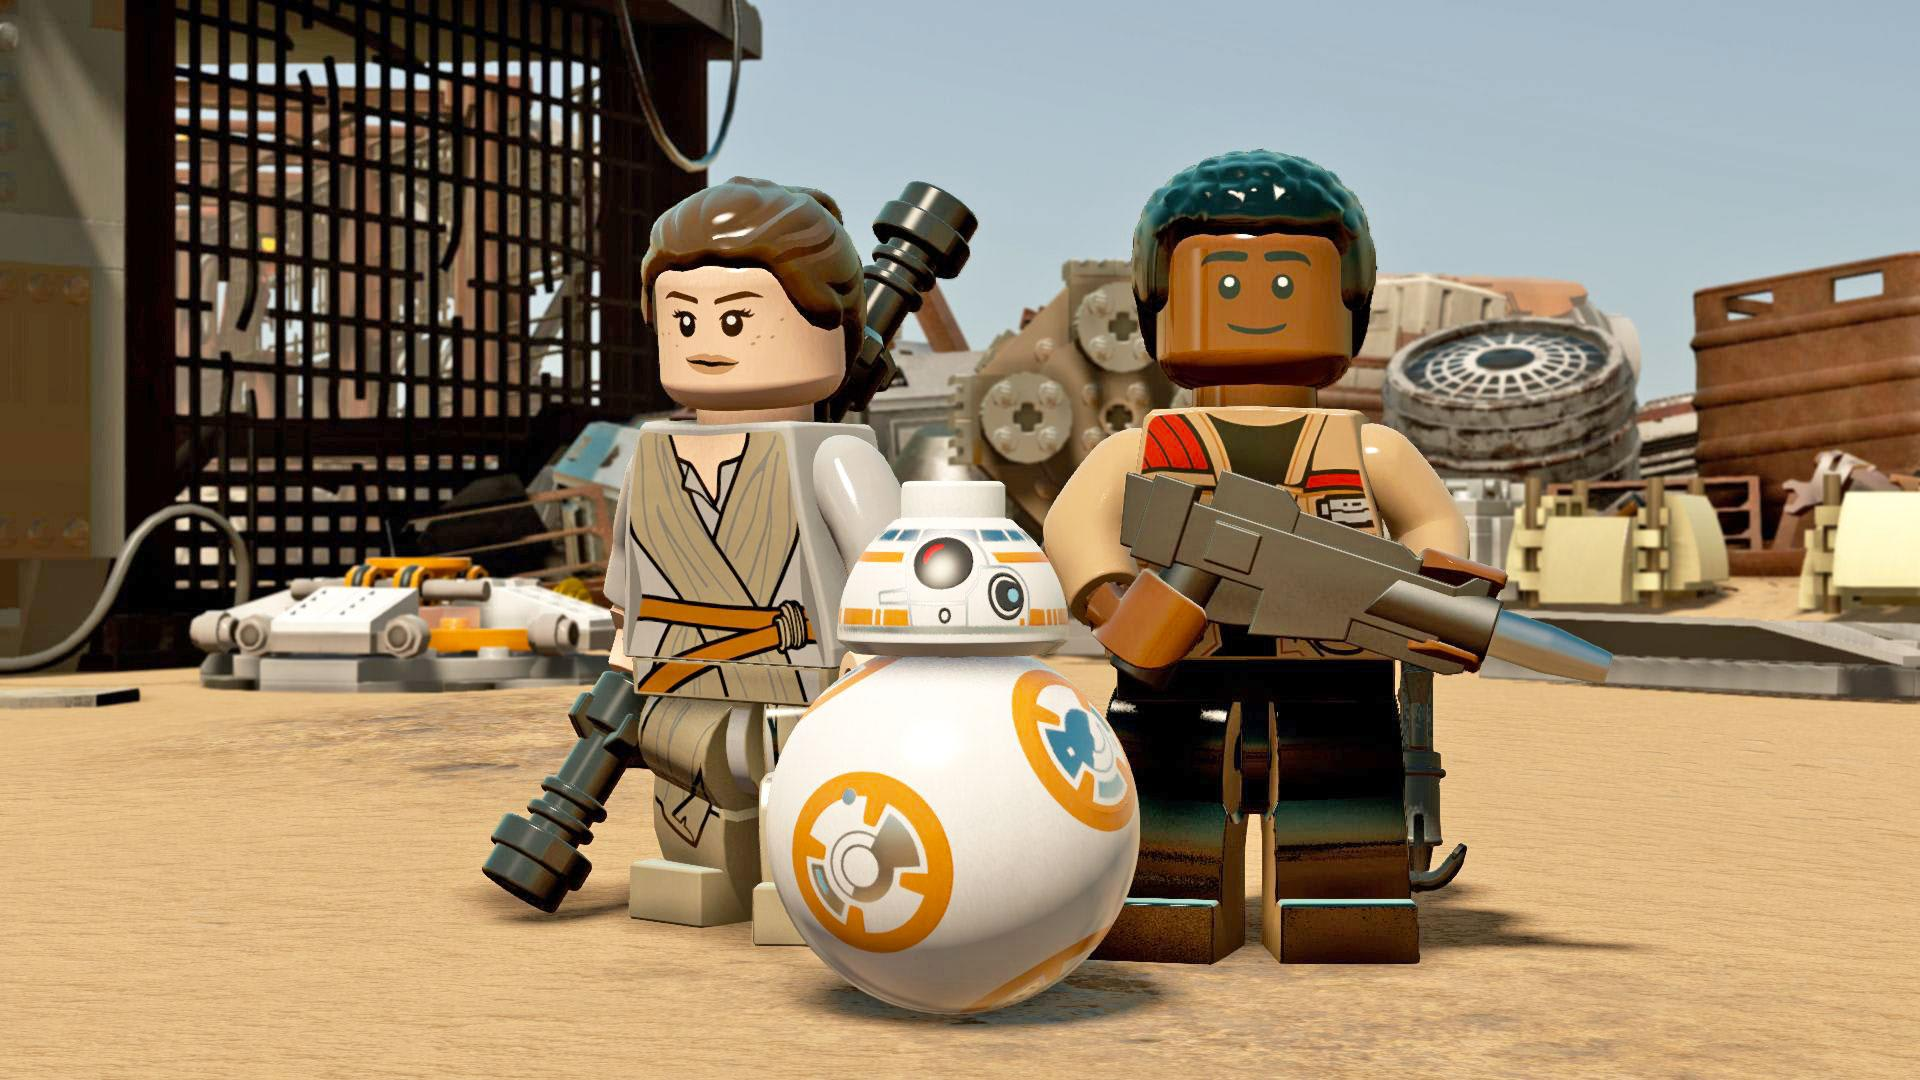 Lego Star Wars The Force Awakens Season Pass Detailed Engadget